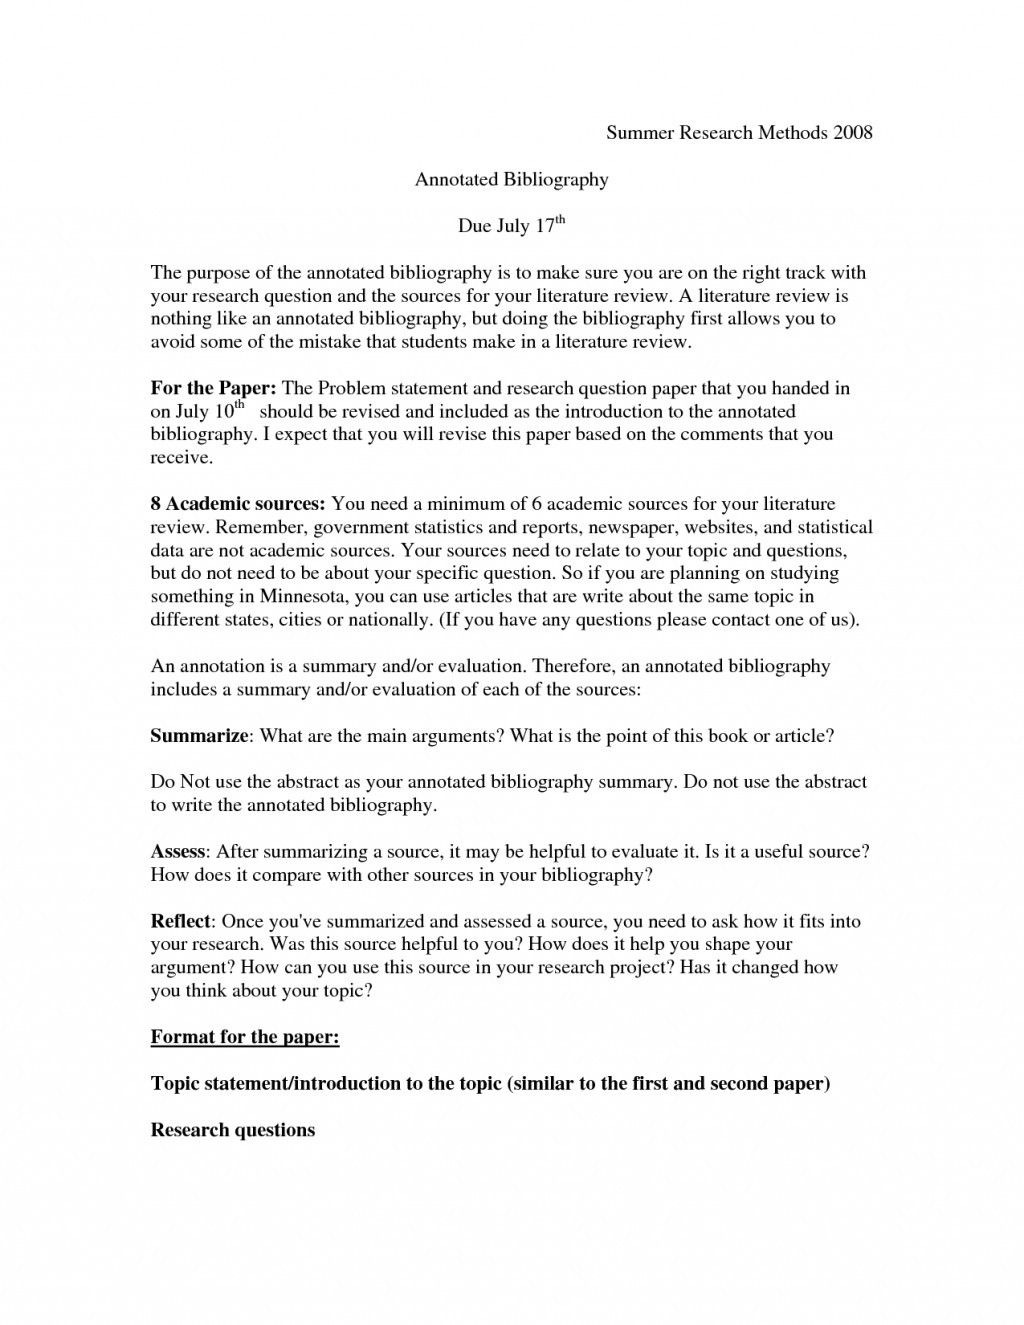 019 Bunch Ideas Of Annotated Bibliography Research Paper Cute Sample For Health Topics To Write Breathtaking A On Large